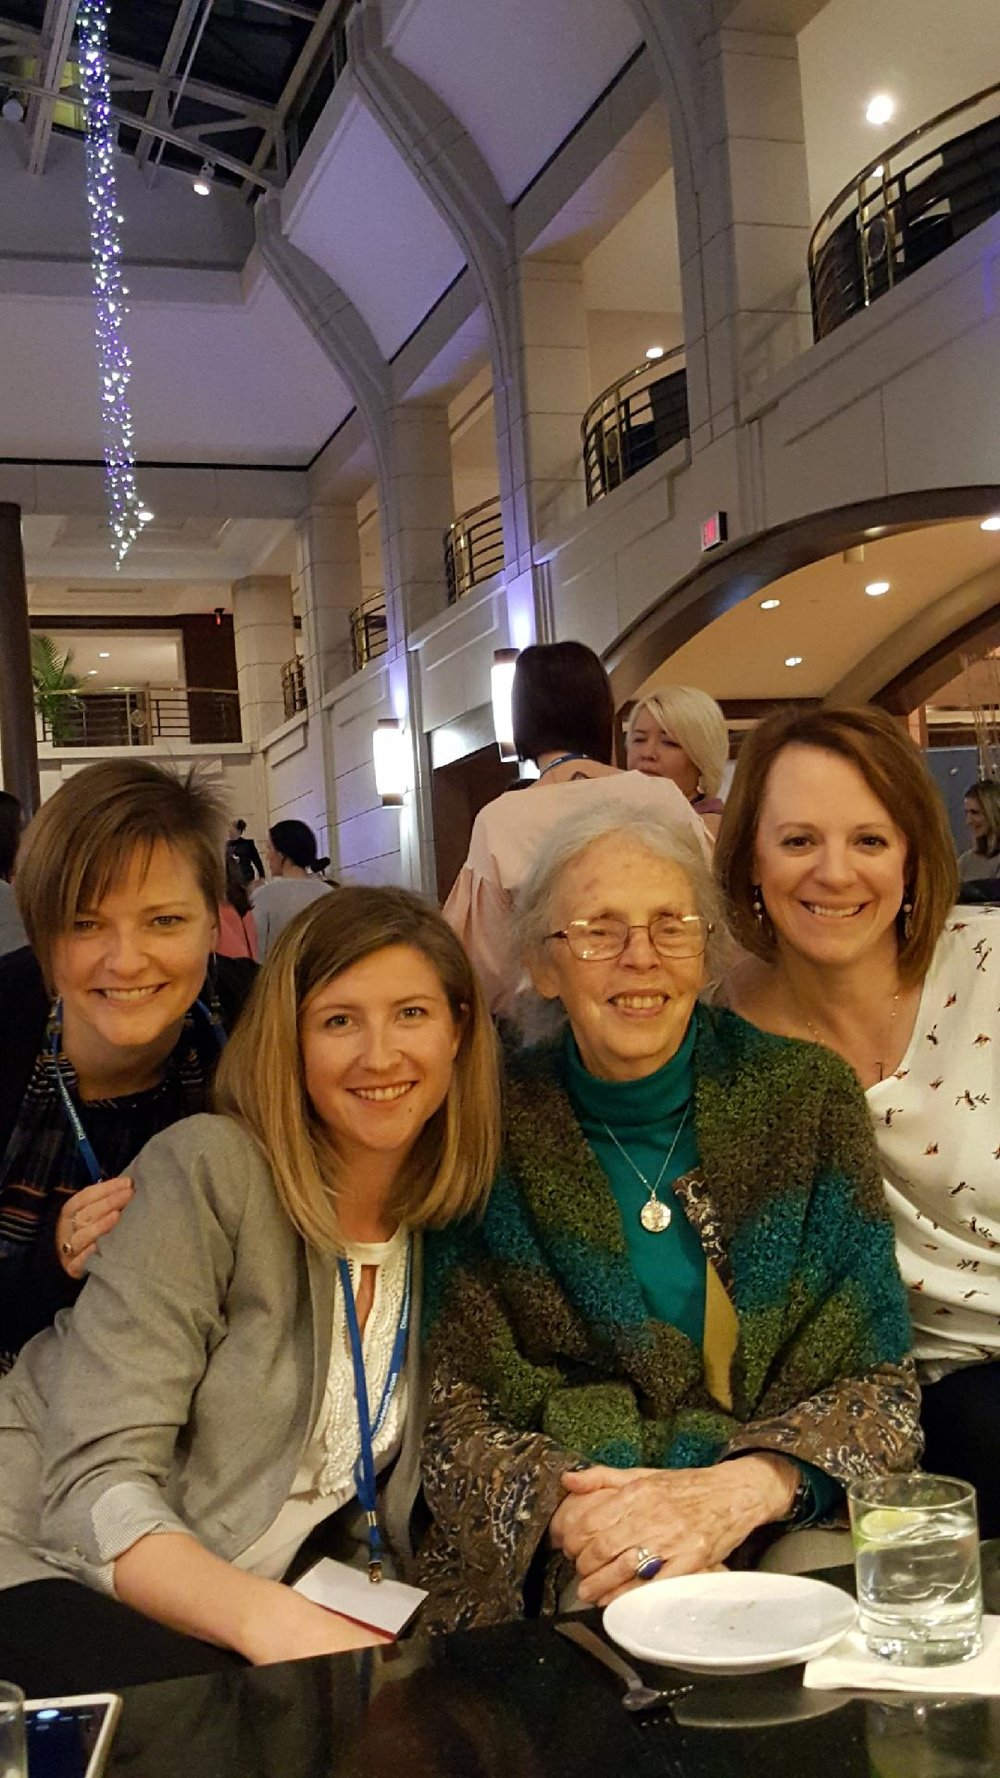 Drs tohtz, stofer, and mercier with the mother of all midwives the wonderful ina may gaskin